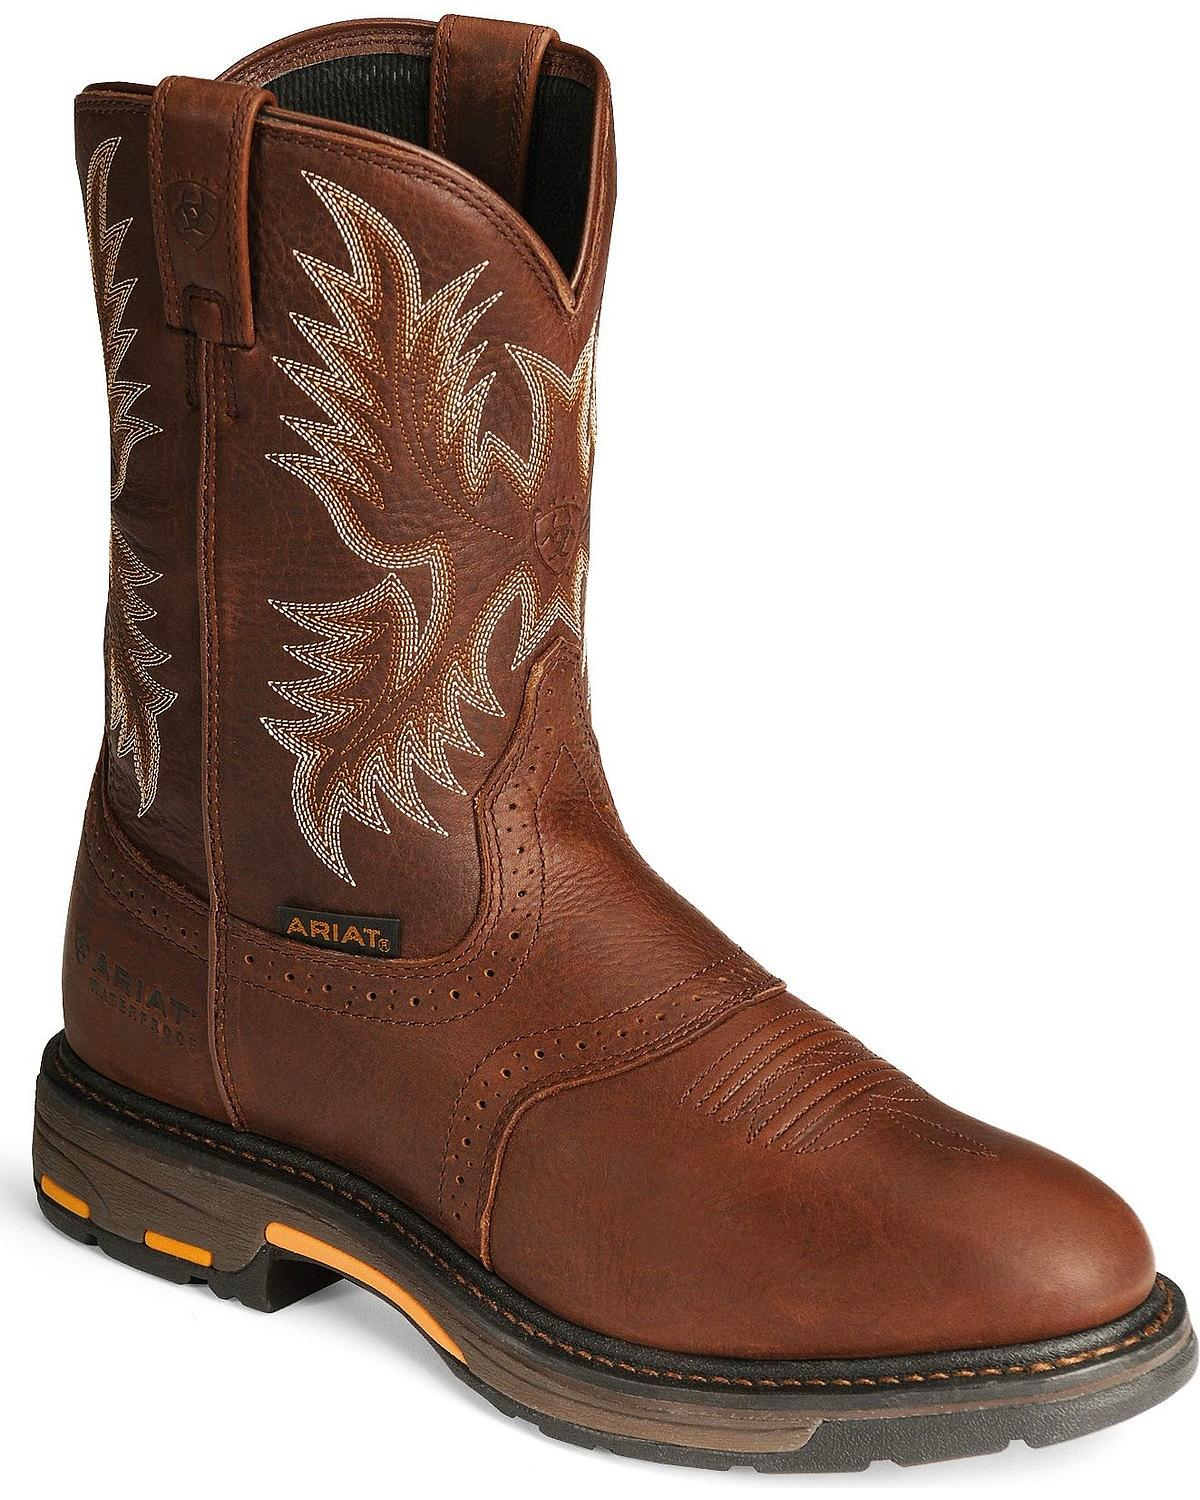 Ariat-Workhog-Pull-On-Work-Boot-10001188